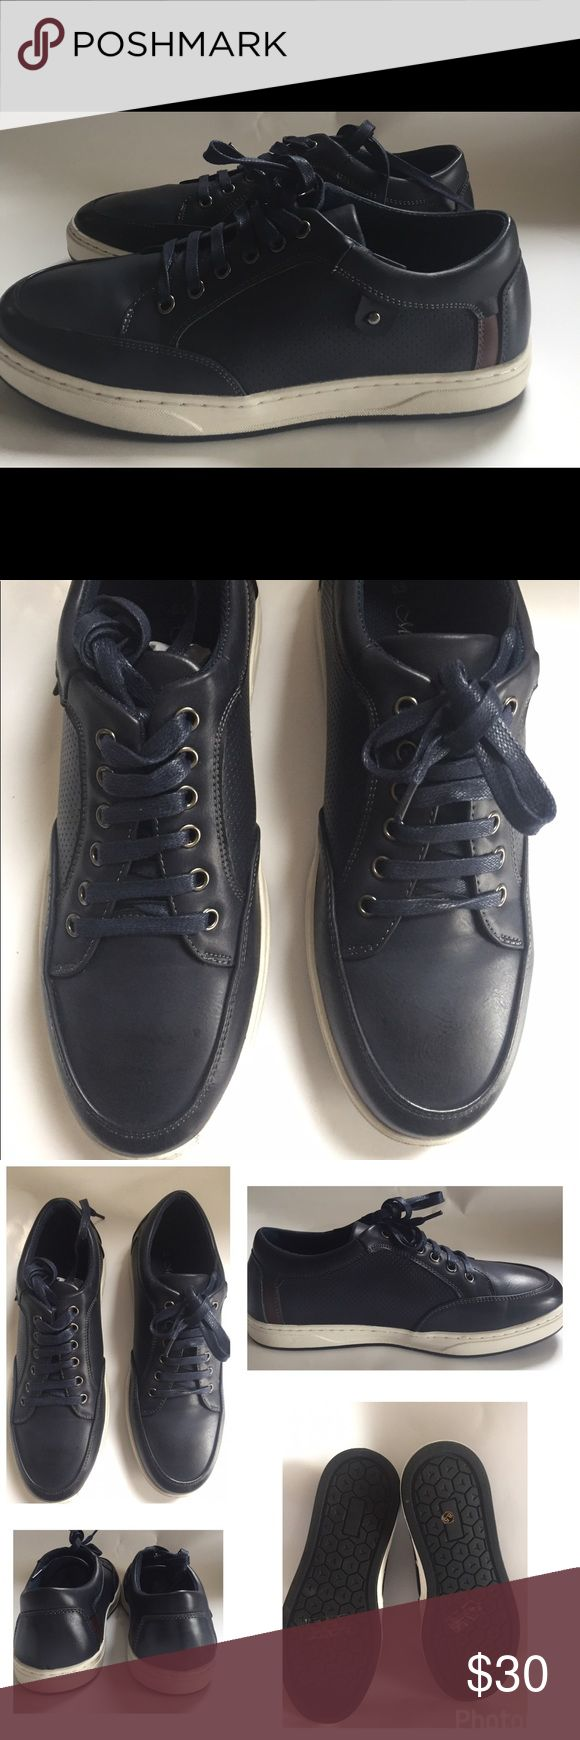 Mens Shoes Brand  Marco Vitale , mens , size 8 1/2 marco Vitale Shoes